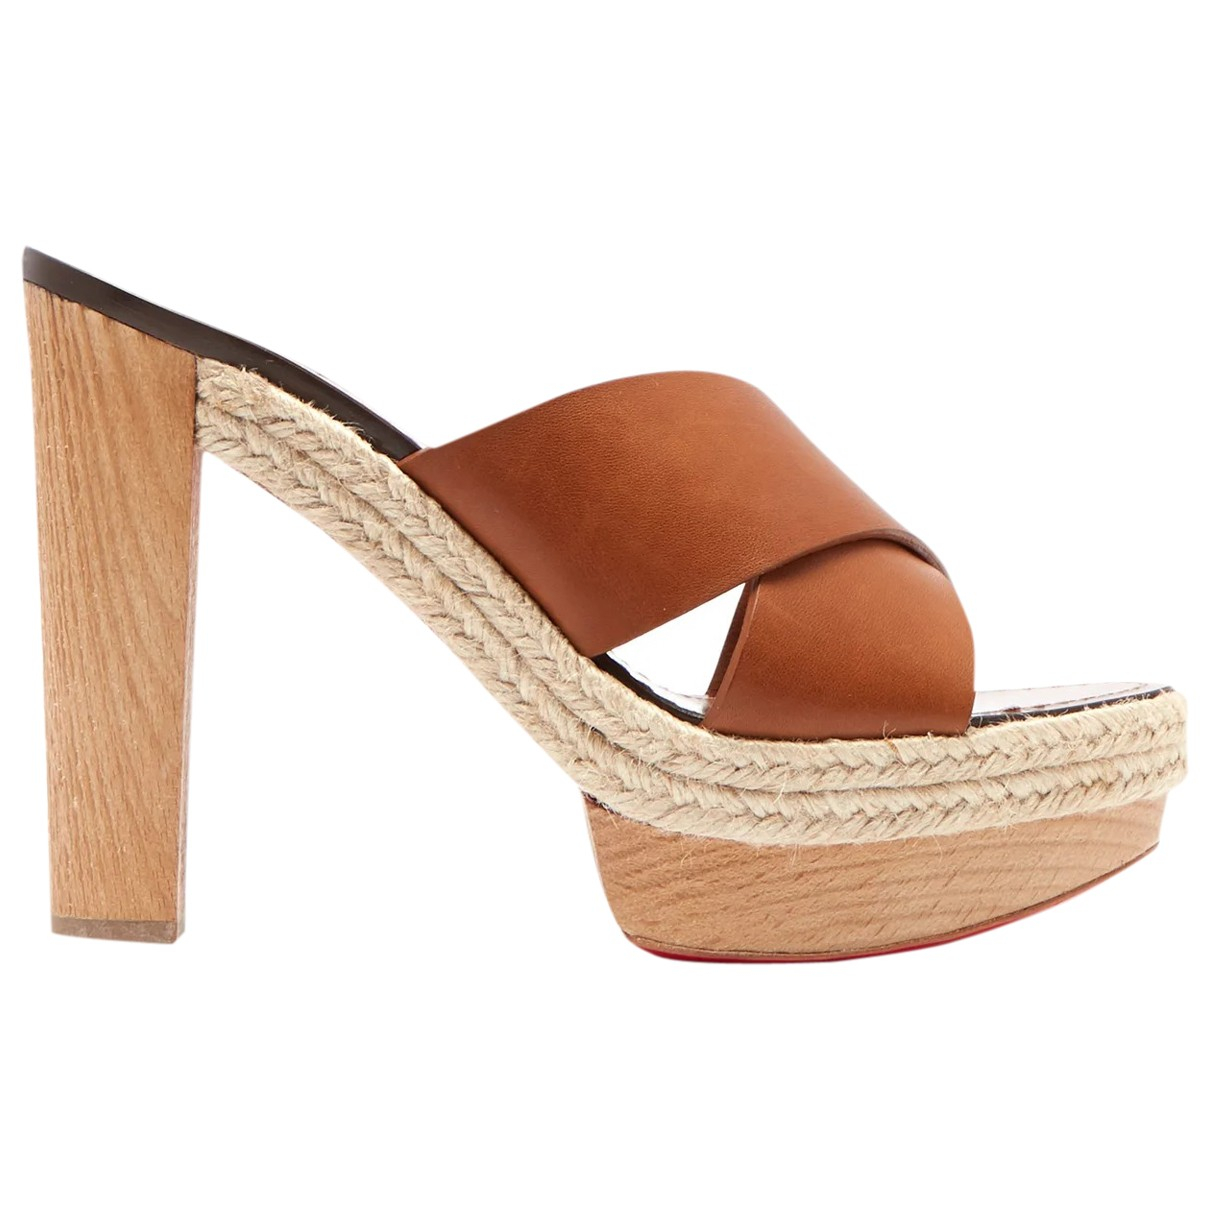 Christian Louboutin \N Brown Leather Sandals for Women 41 EU